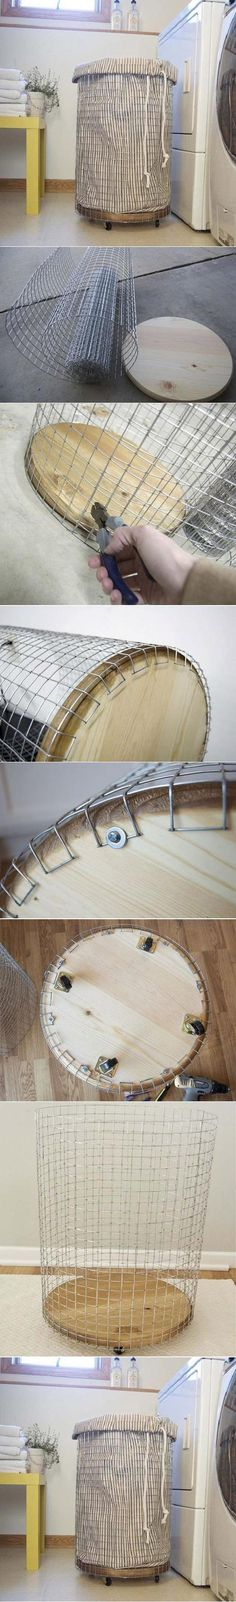 Cheap & Chic: How To Make a French-Vintage-Inspired Wire Hamper - DIY wire laundry basket La mejor imagen sobre diy face mask para tu gusto Estás buscando algo y no - Diy Projects To Try, Home Projects, Crafts To Make, Diy Crafts, Crafts Cheap, Towel Crafts, Weekend Projects, Wire Laundry Basket, Laundry Hamper